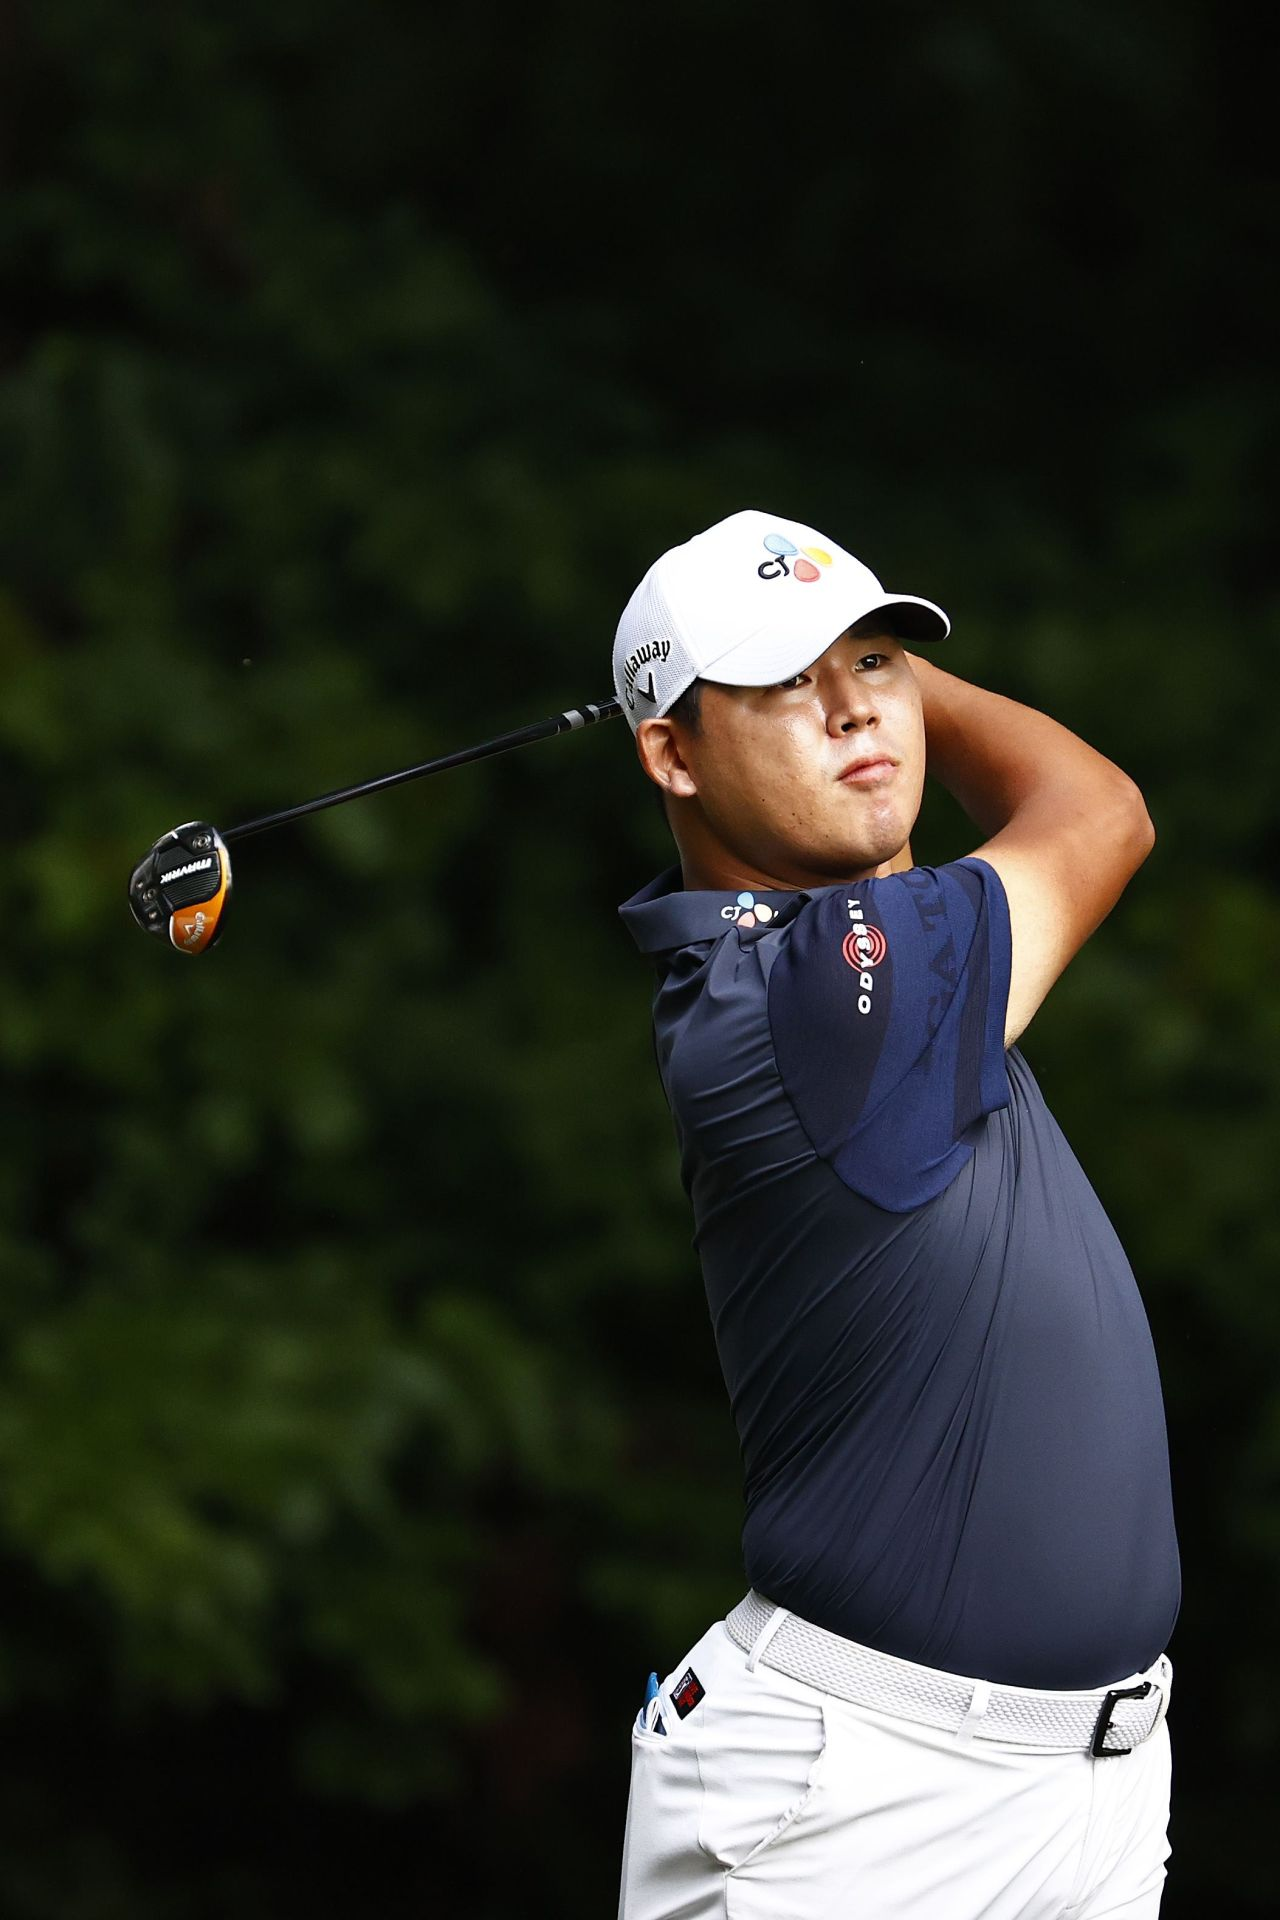 Kim Si-woo plays his shot from the second tee during the final round of the Wyndham Championship at Sedgefield Country Club on Sunday in Greensboro, North Carolina. (AFP-Yonhap)